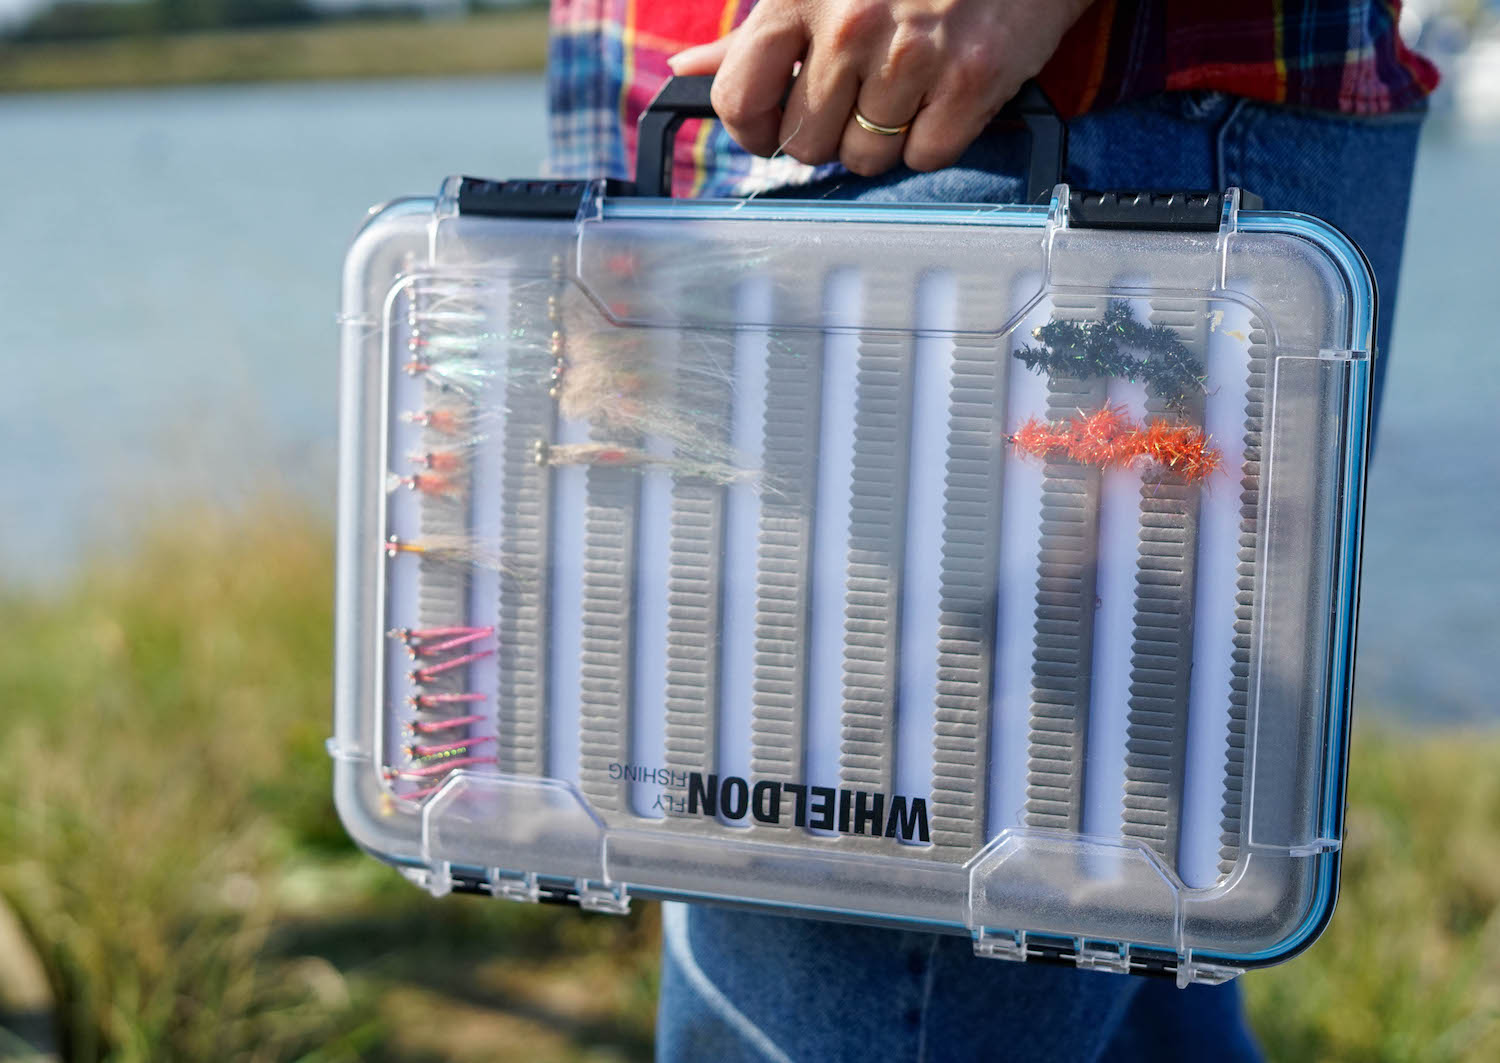 SUITCASE FLY BOX - Whieldon Fly Fishing